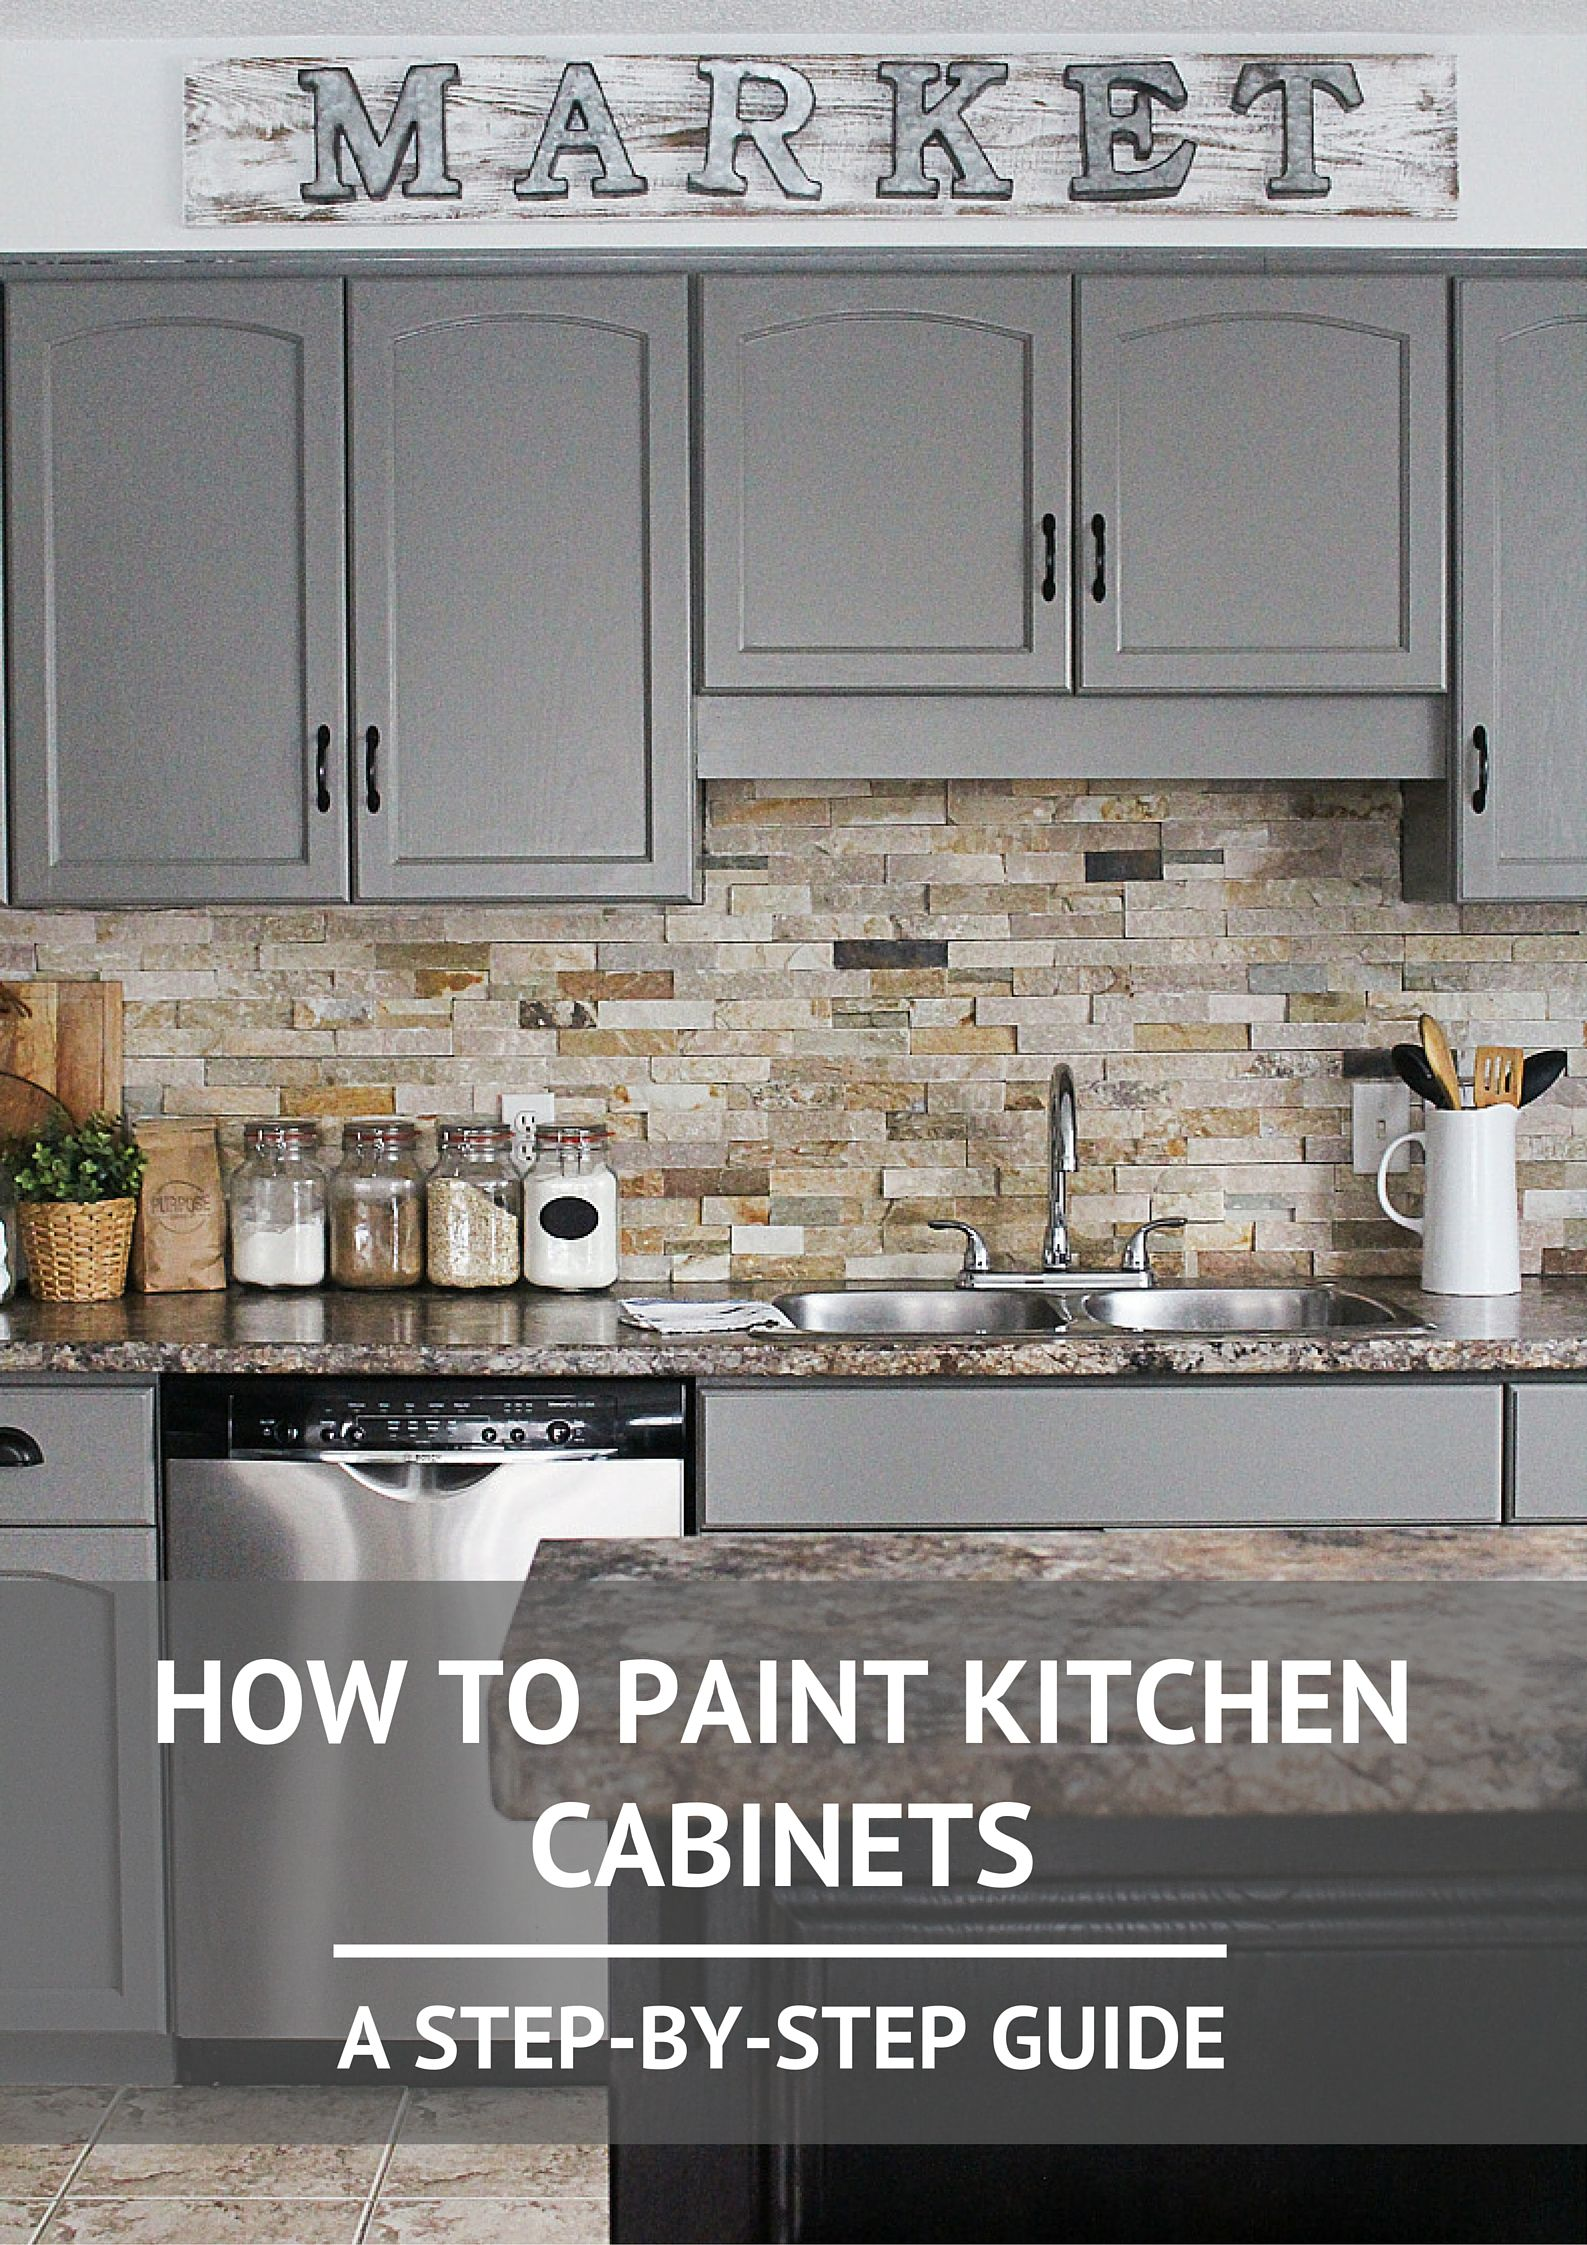 How To Paint Kitchen Cabinets Painting Kitchen Cabinets Kitchen Cabinets Makeover Kitchen Cabinets